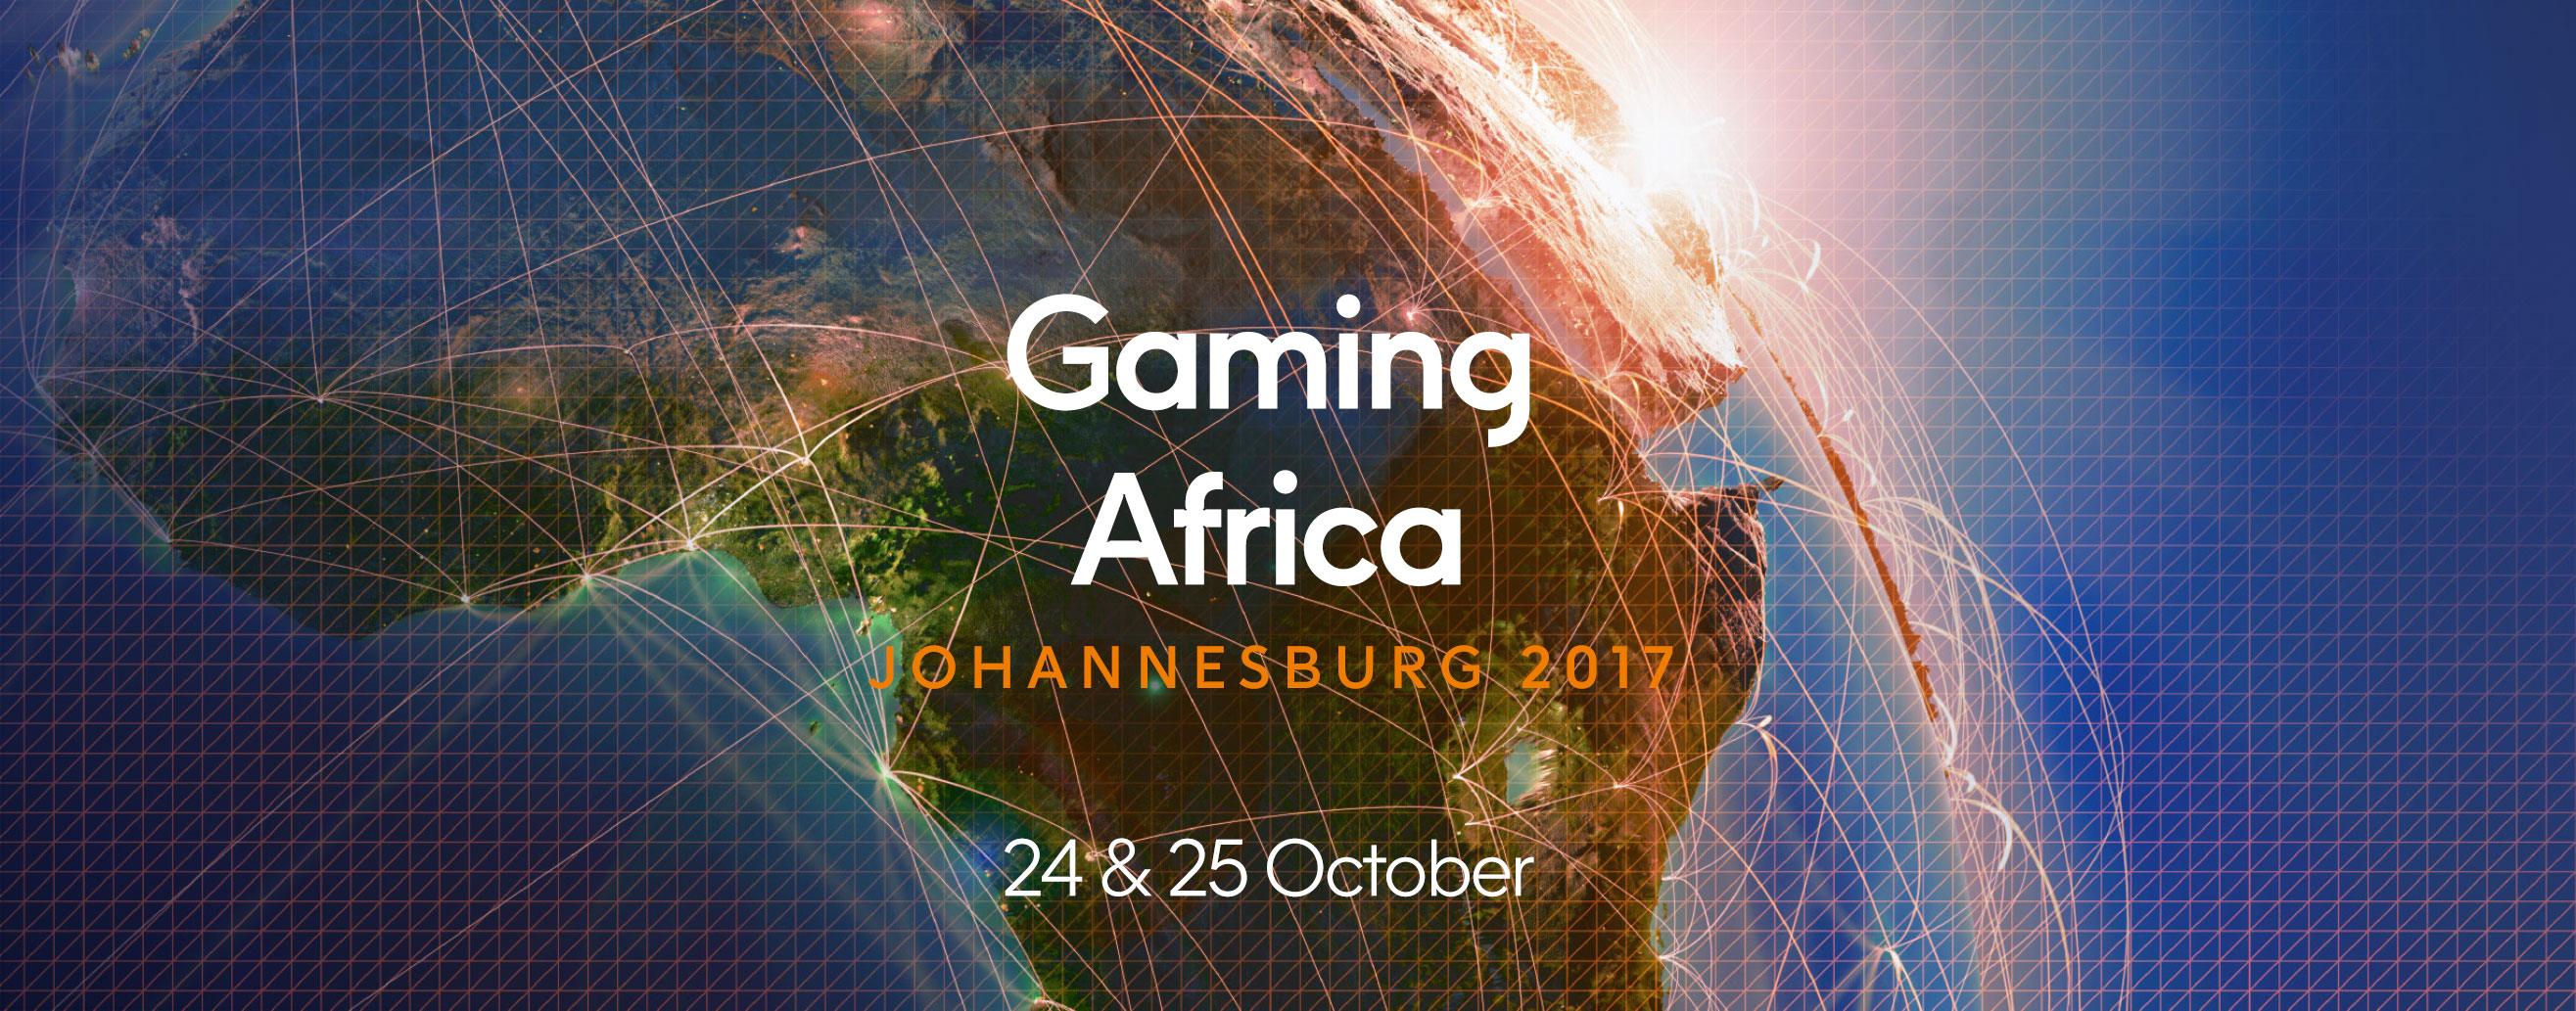 Gaming Africa - Johannesburg 24 & 25 October